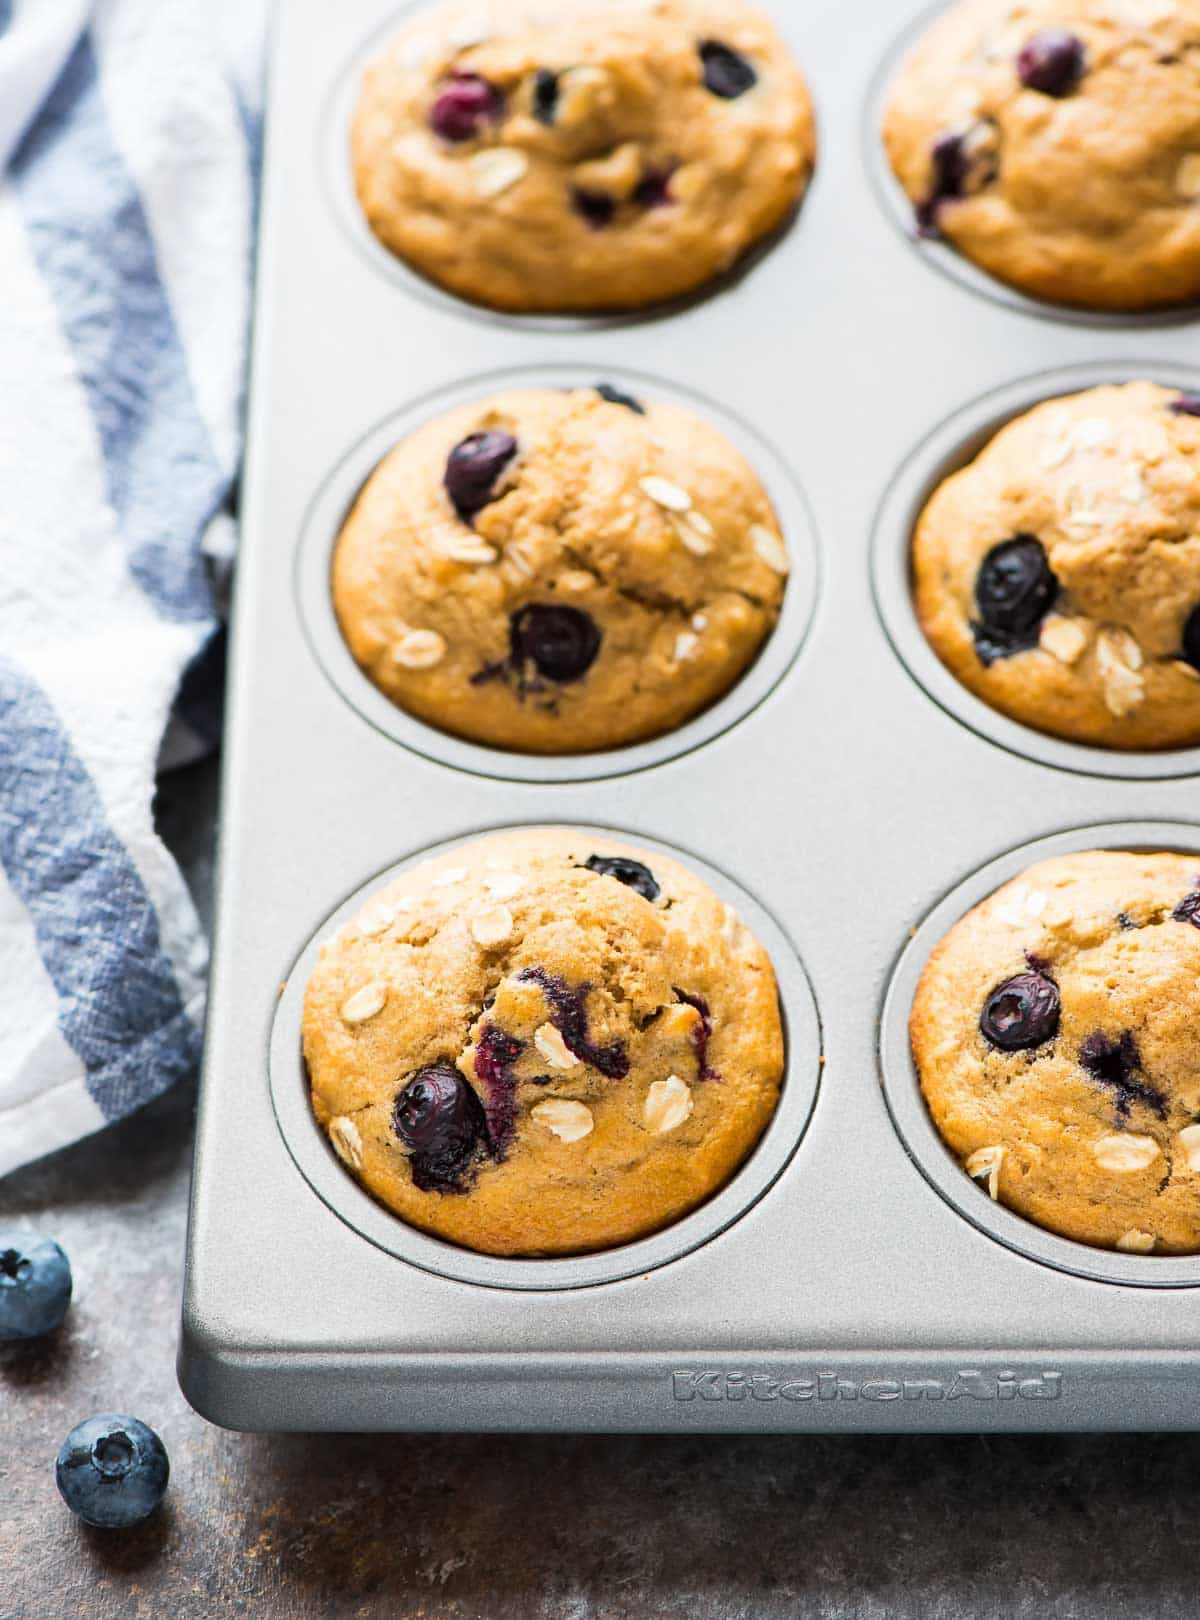 Healthy Blueberry Muffins with oatmeal and whole wheat flour. Low calorie, and bursting with fresh berries! An easy, healthy recipe that's perfect for toddlers AND adults. Recipe at wellplated.com | @wellplated